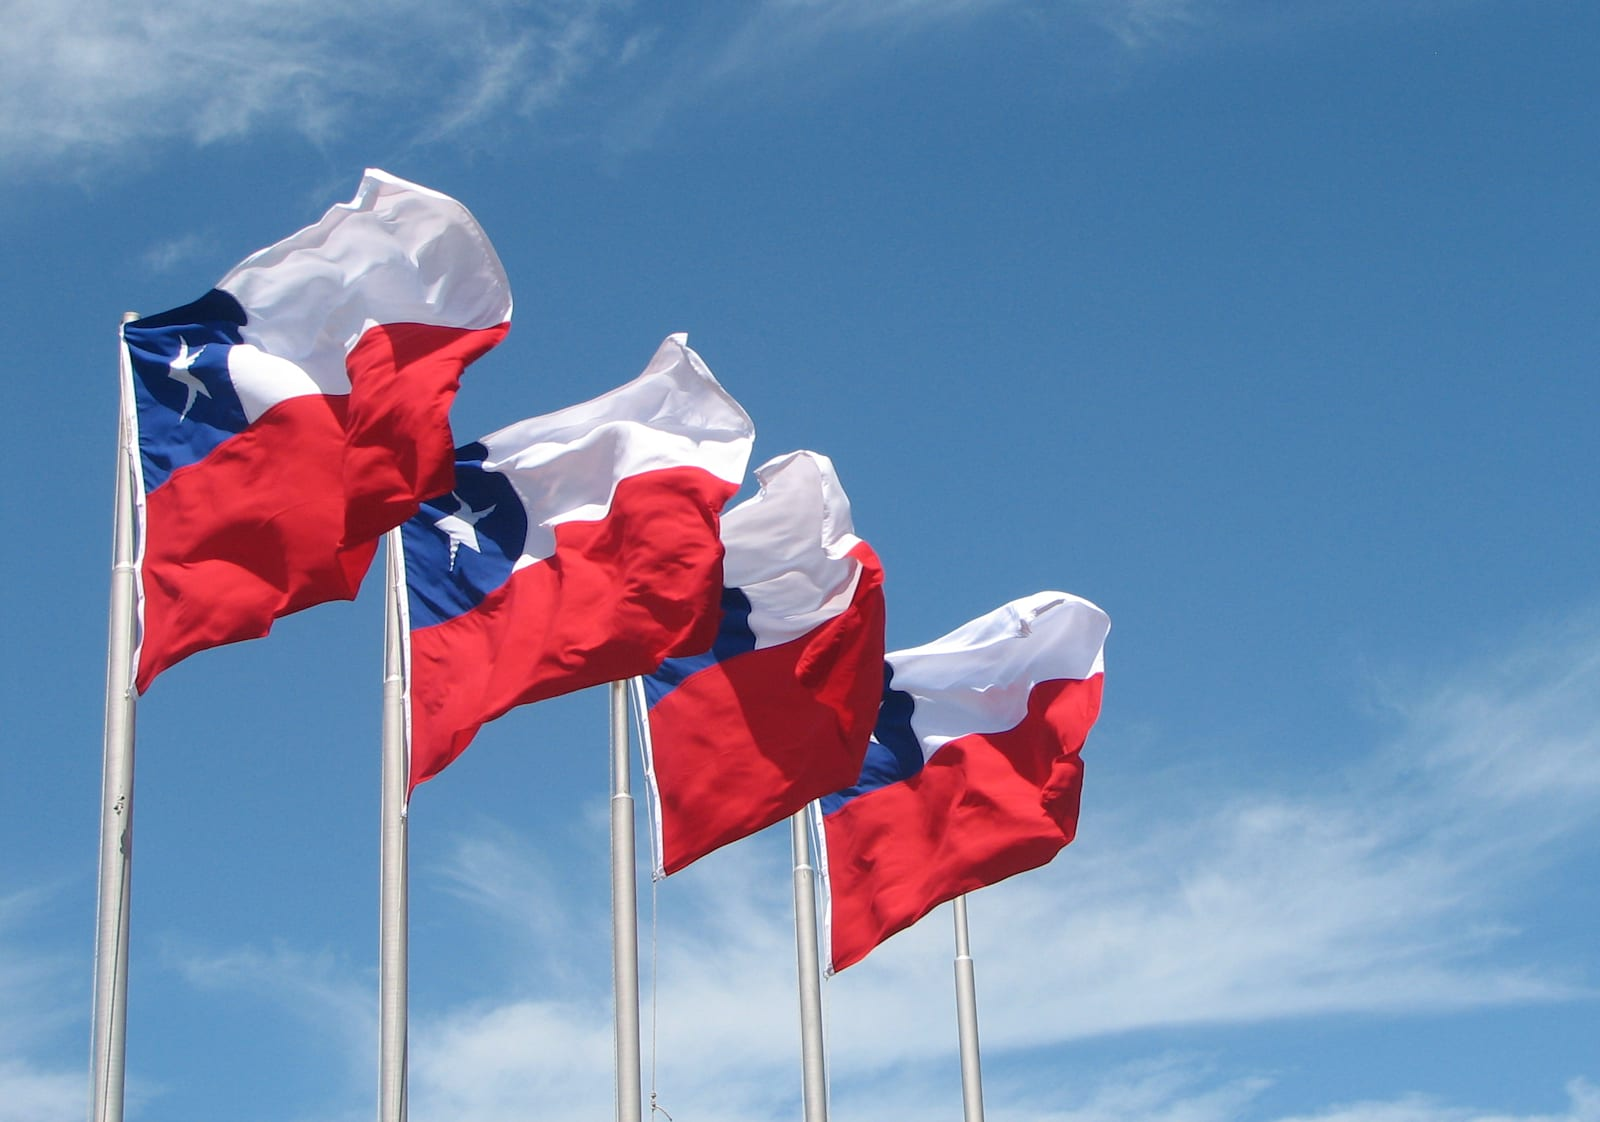 lawmaker chile and texas don t share a flag y all